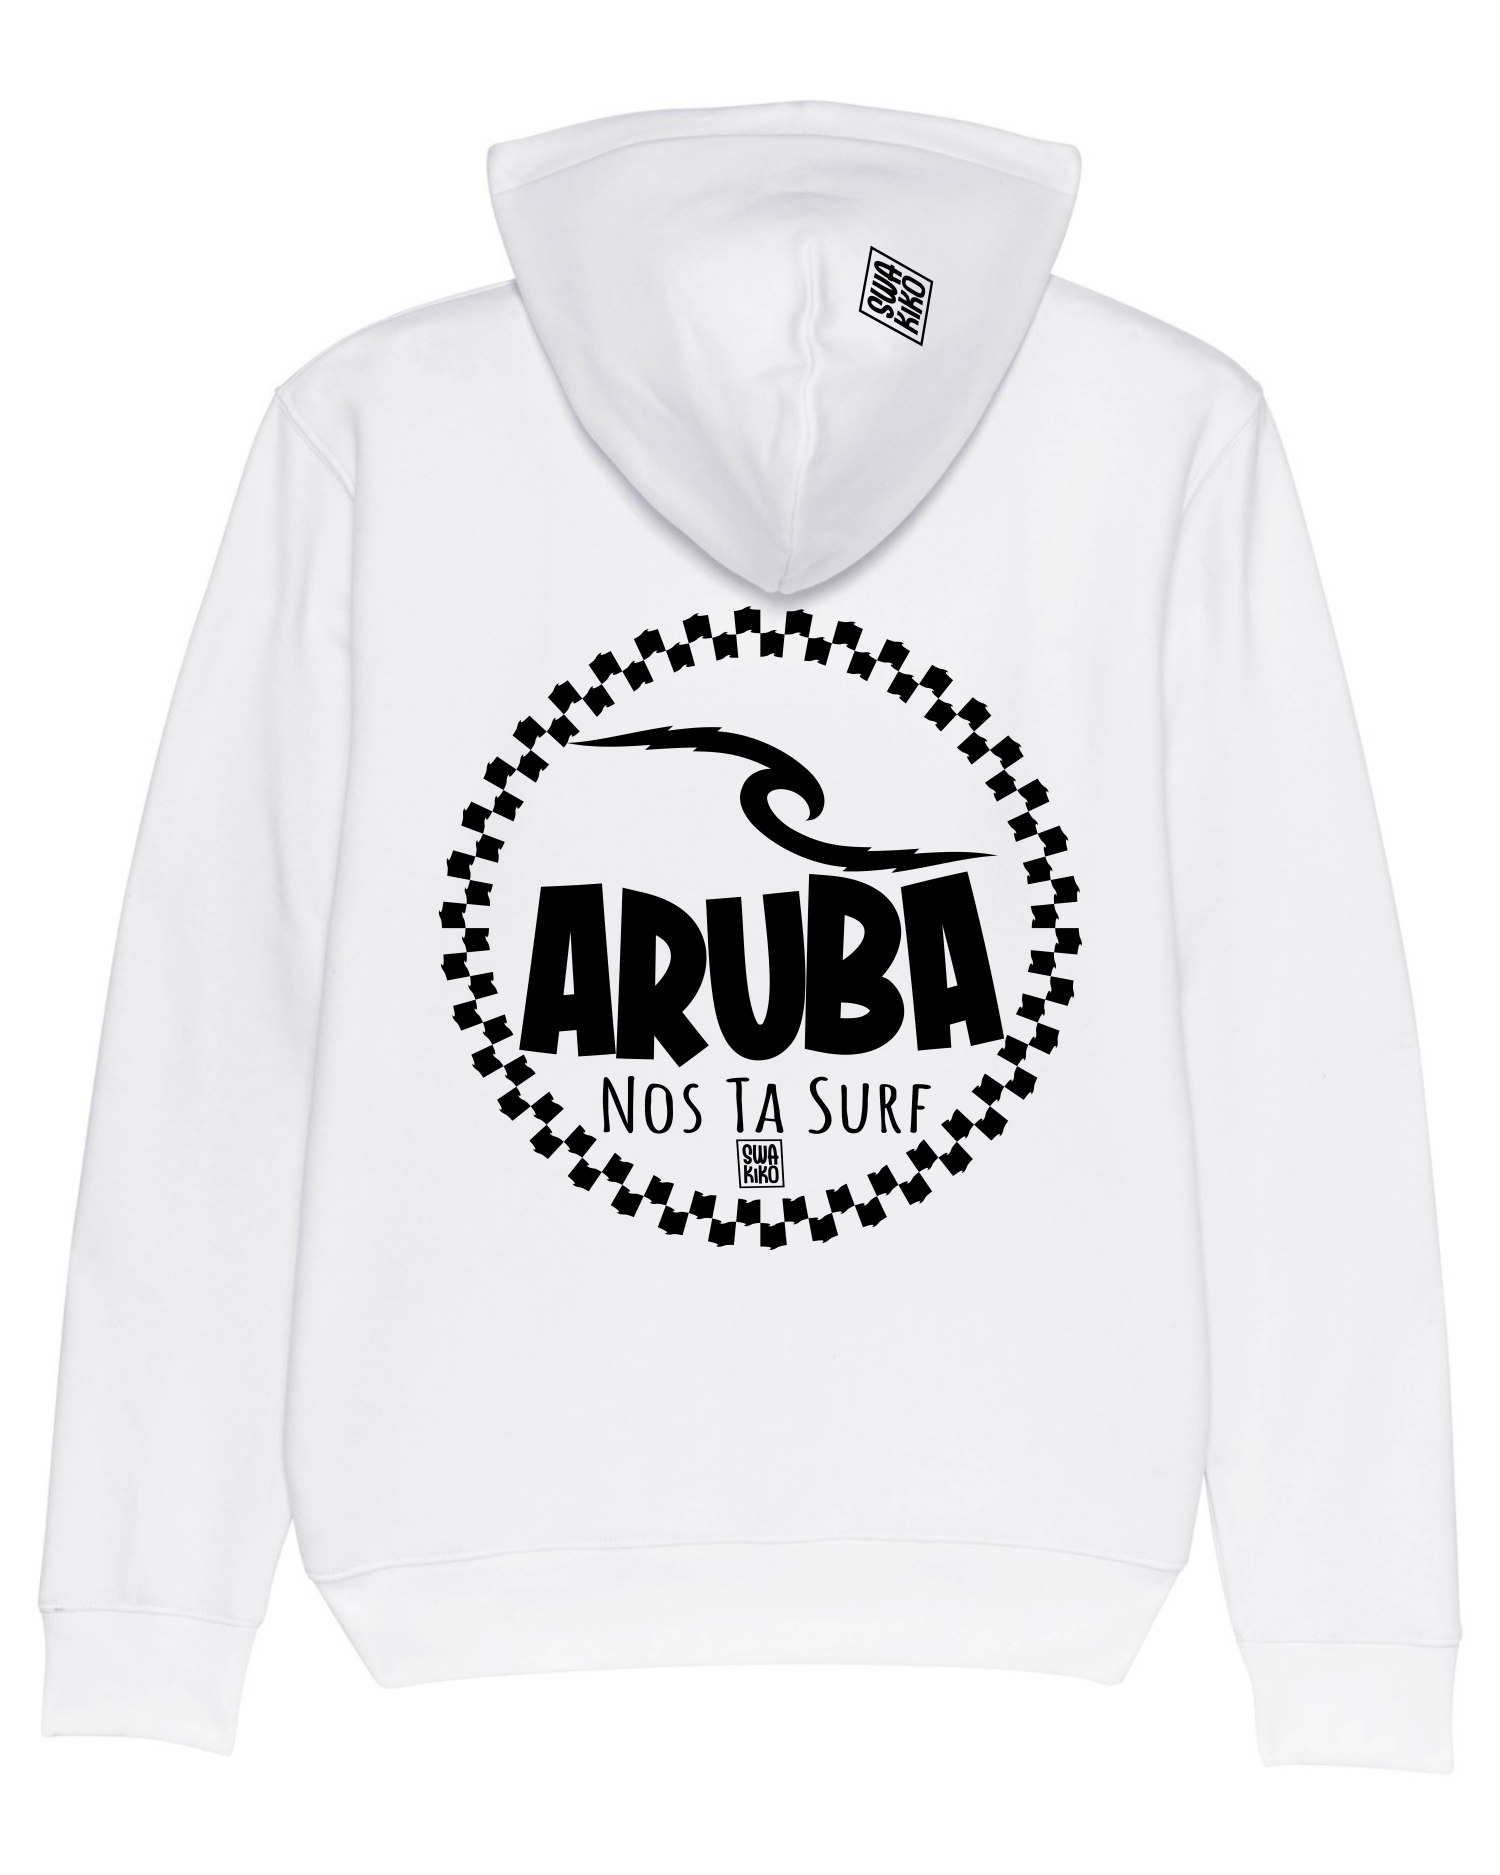 Surf Hoodie Aruba, We Are Surf, white